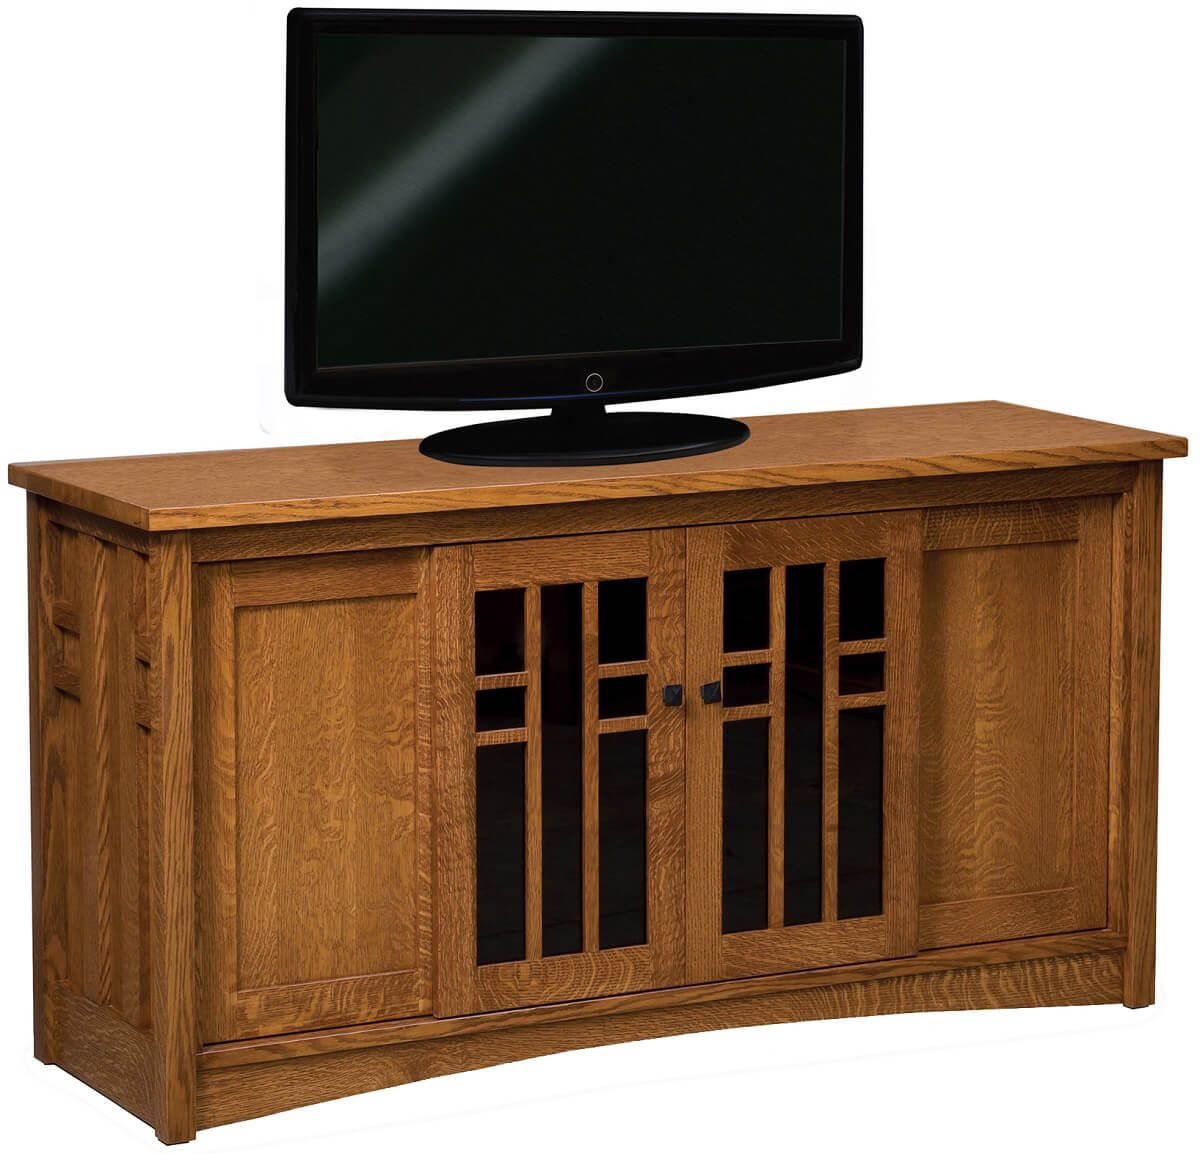 36-Inch Tall Console